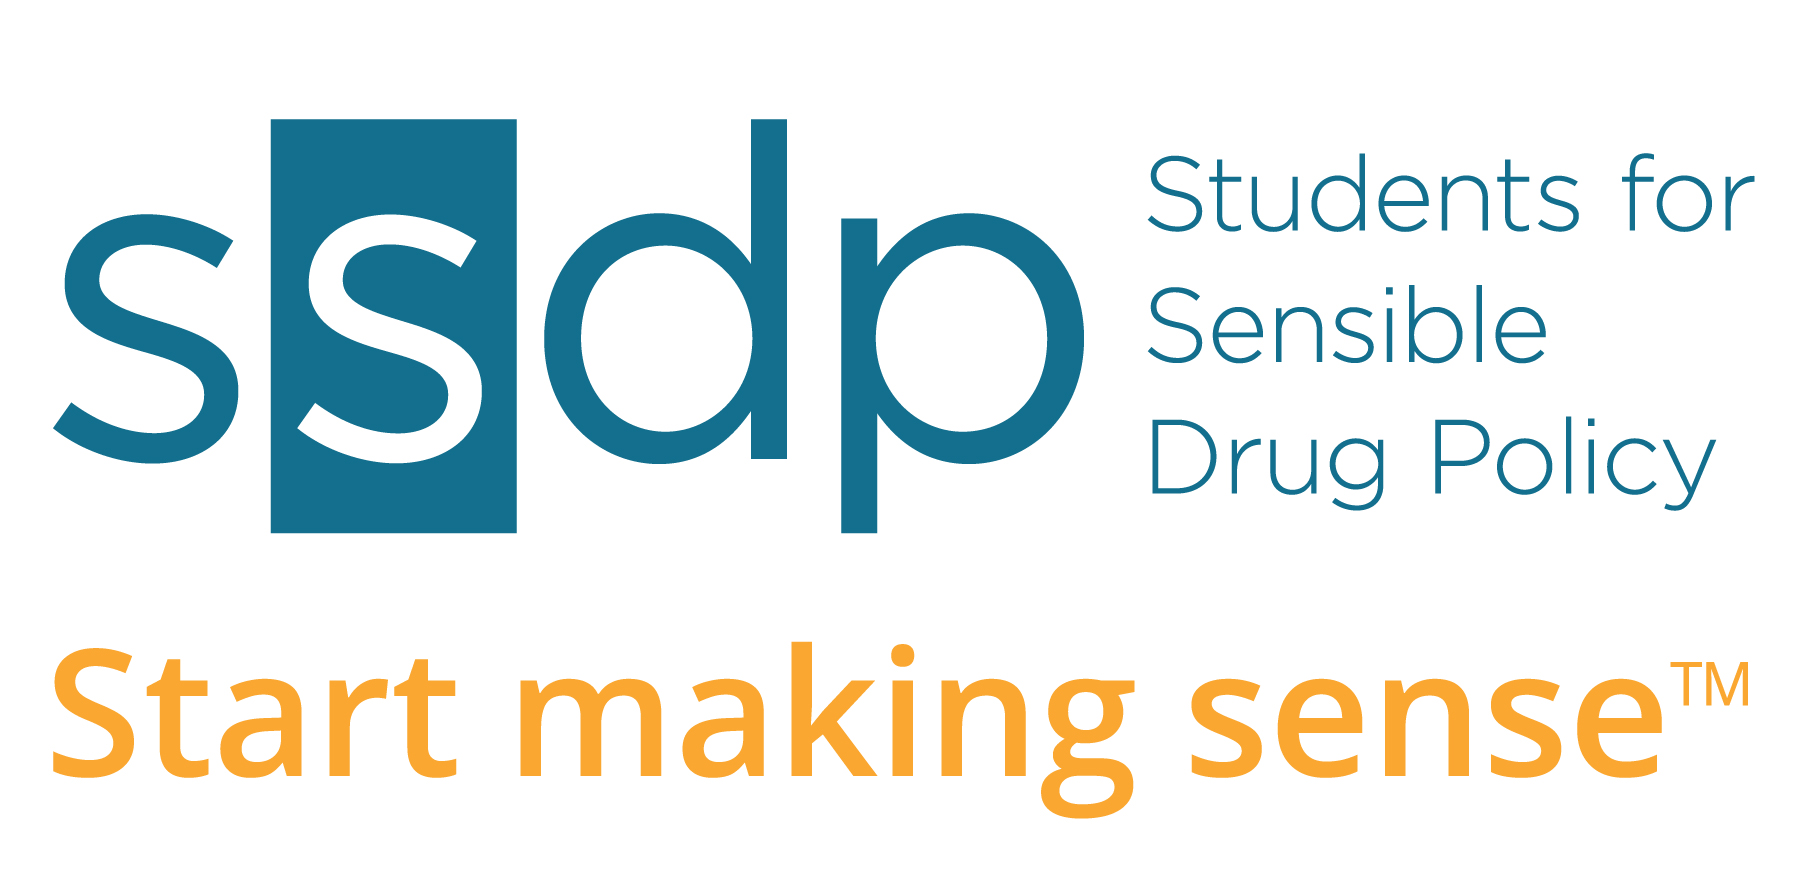 Students For Sensible Drug Policy